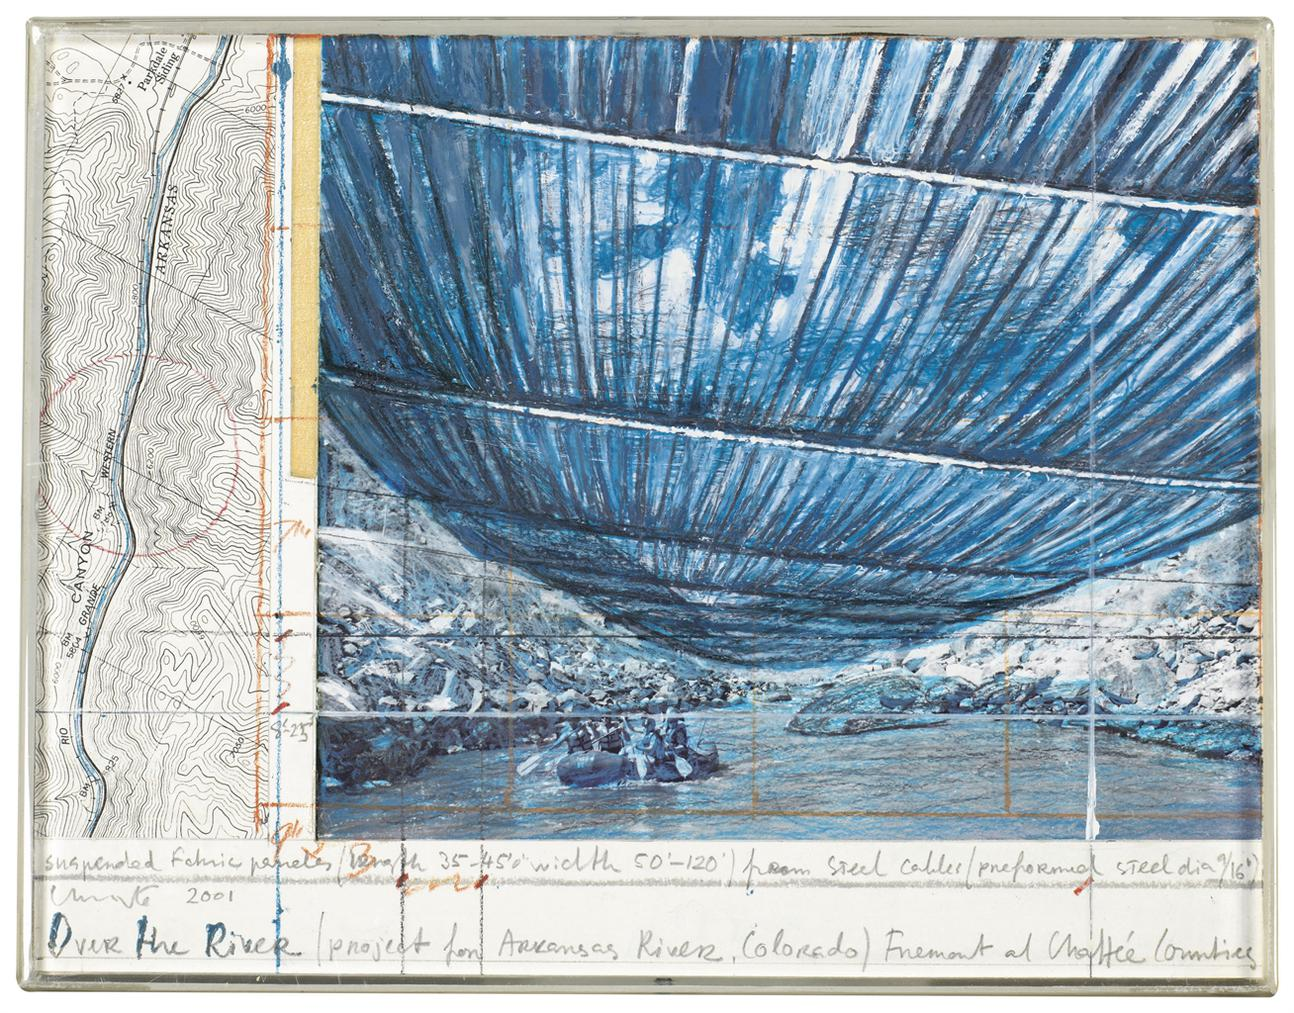 Christo and Jeanne-Claude-Over The River (Project For Arkansas River, Colorado)-2001